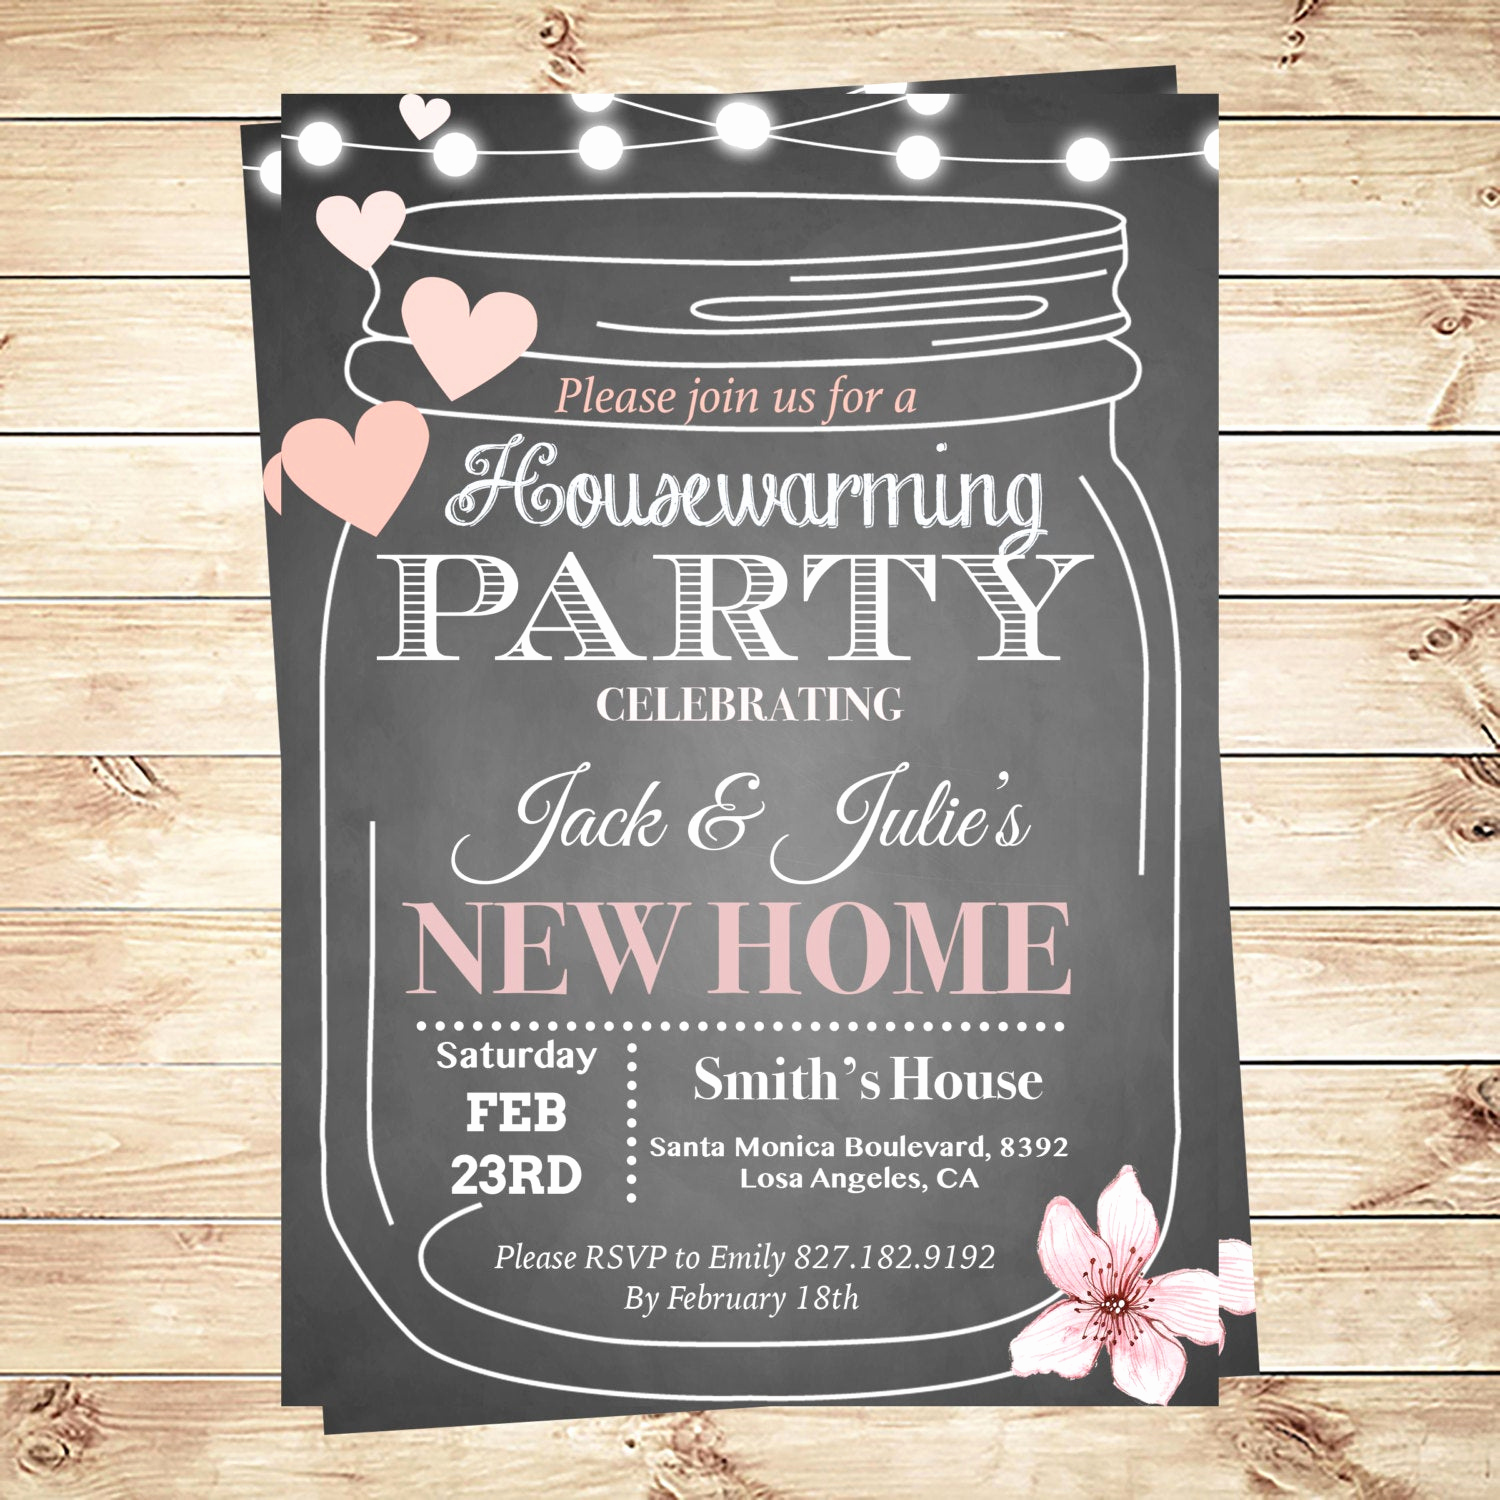 Housewarming Party Invitation Templates Luxury Housewarming Party Invitations Template by Diypartyinvitation